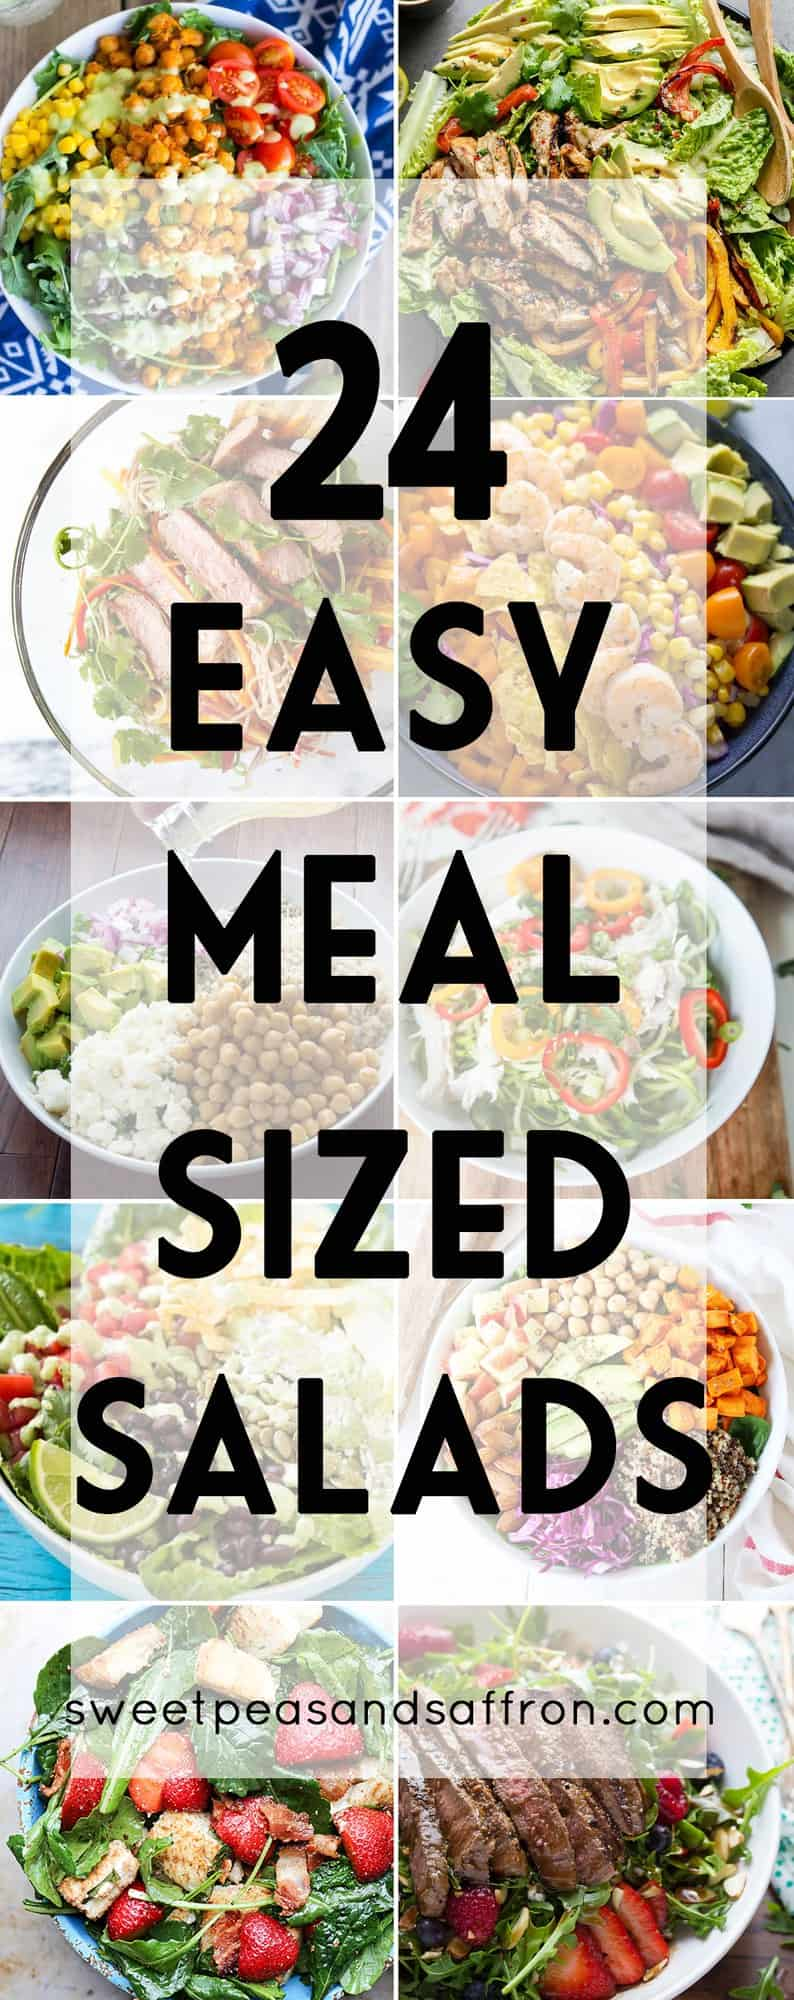 24 Easy Meal Sized Salad Recipes, including vegetarian, chicken, beef and seafood salad recipes